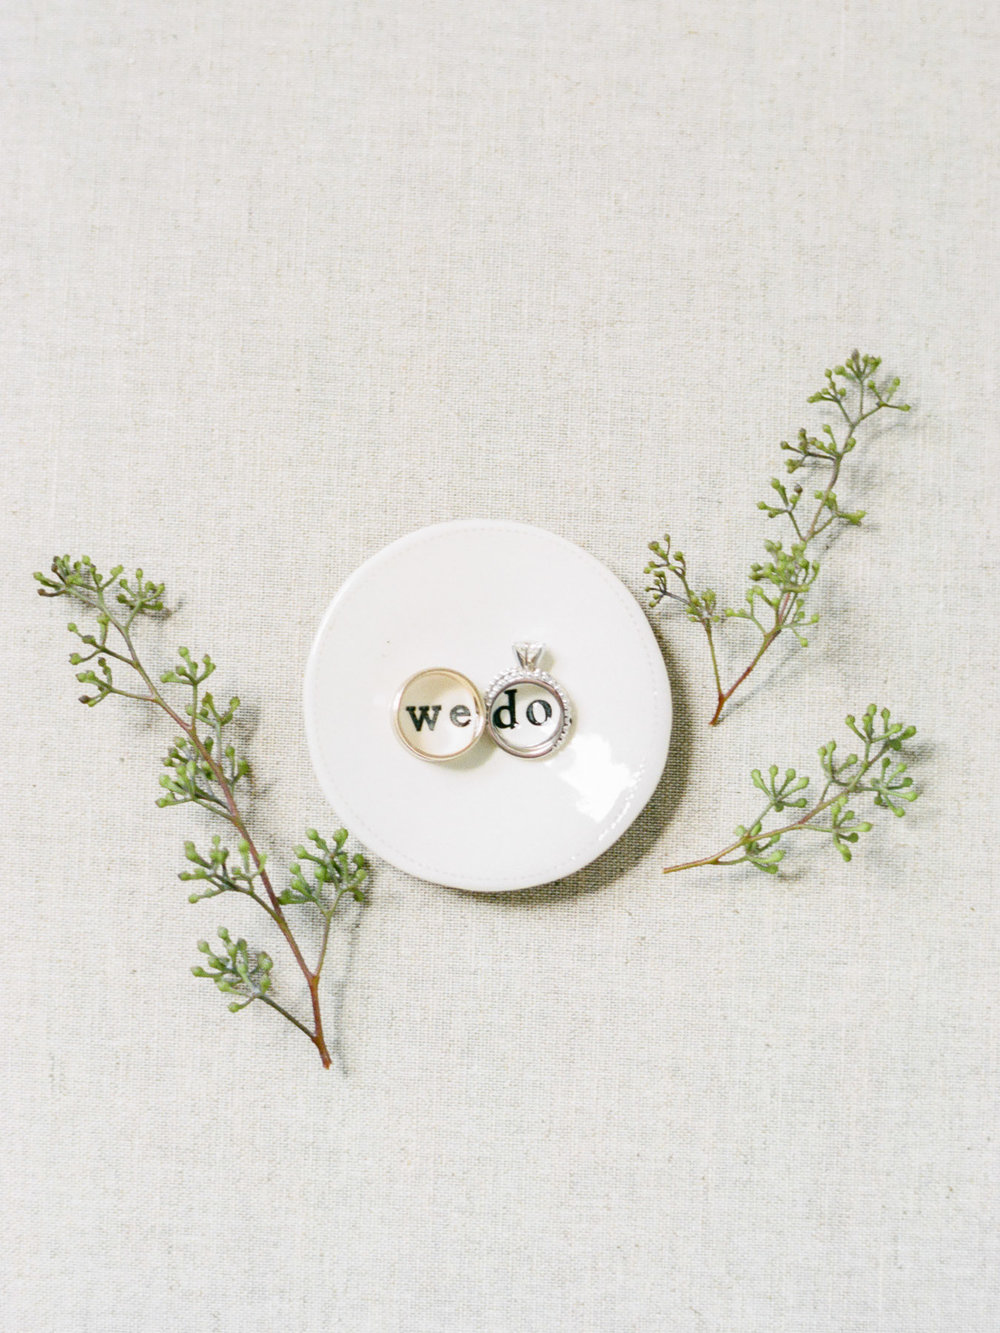 Wedding ring styling idea